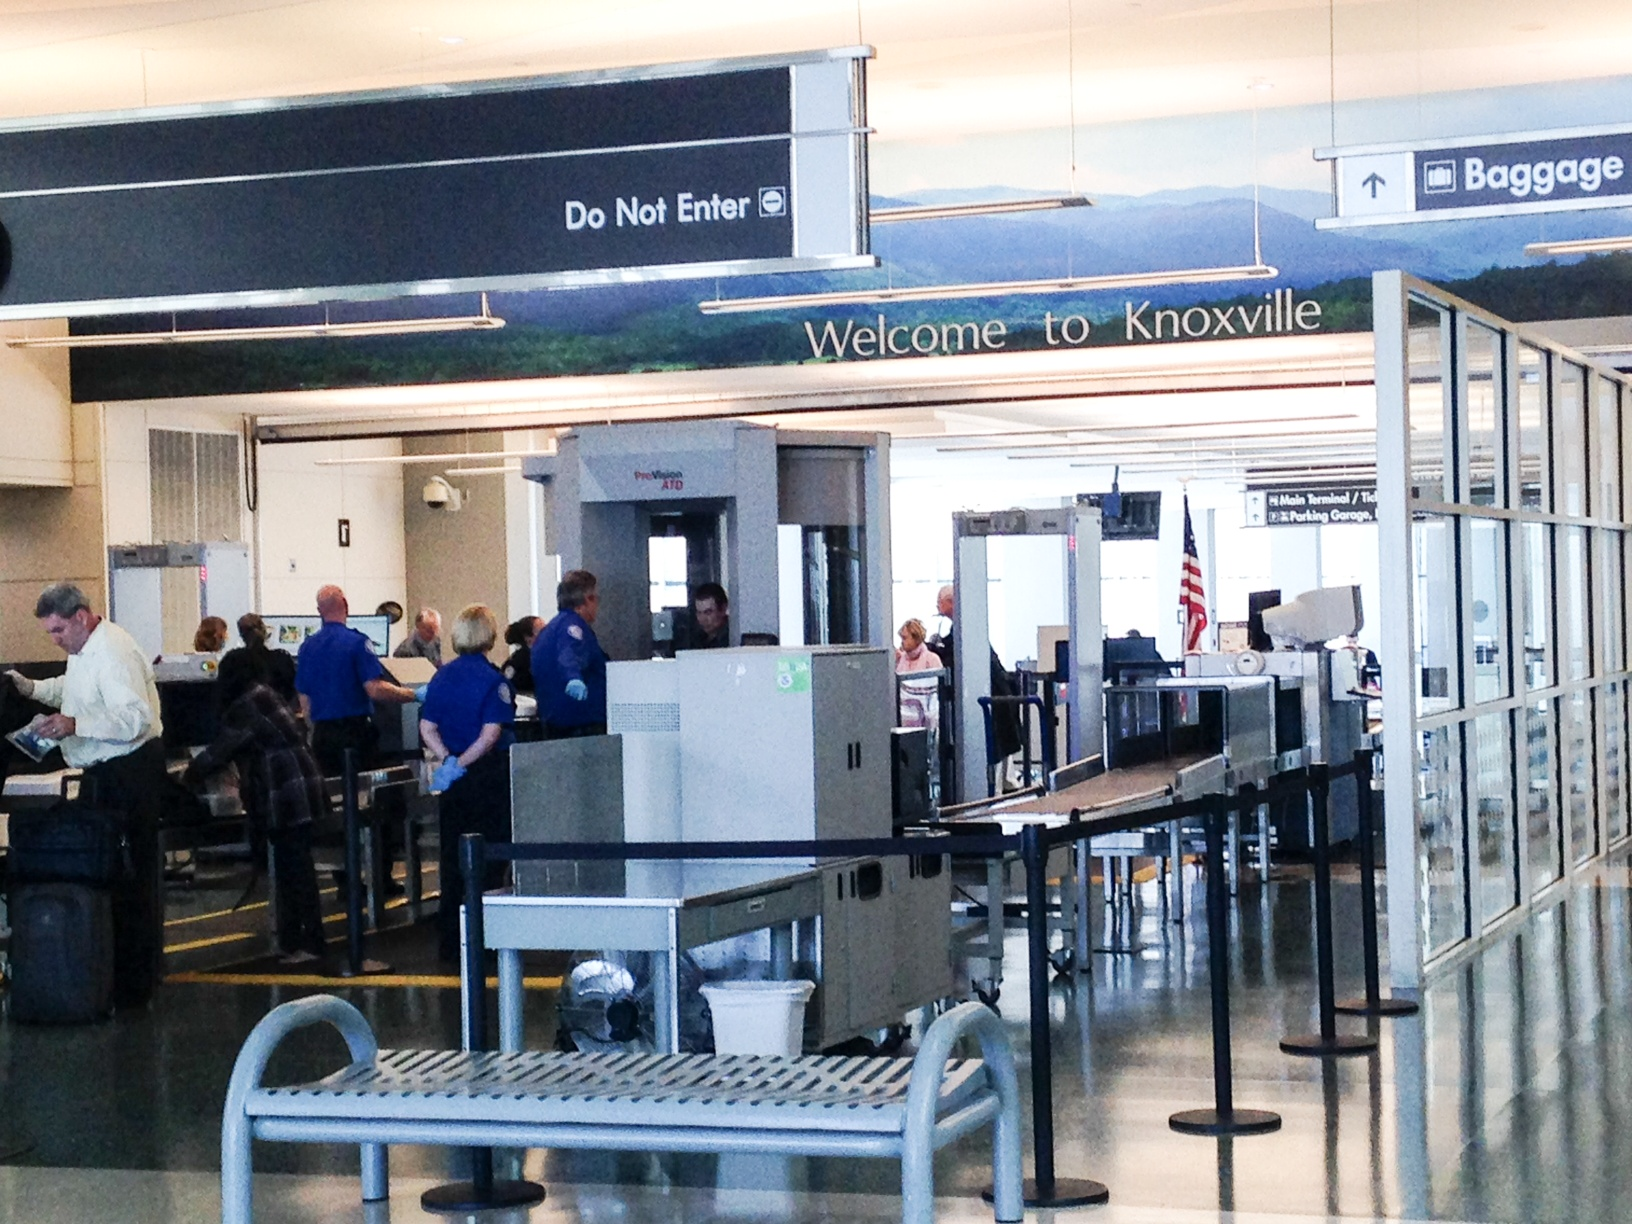 Security Checkpoint inside McGhee Tyson Airport near Knoxville (Maryville), TN